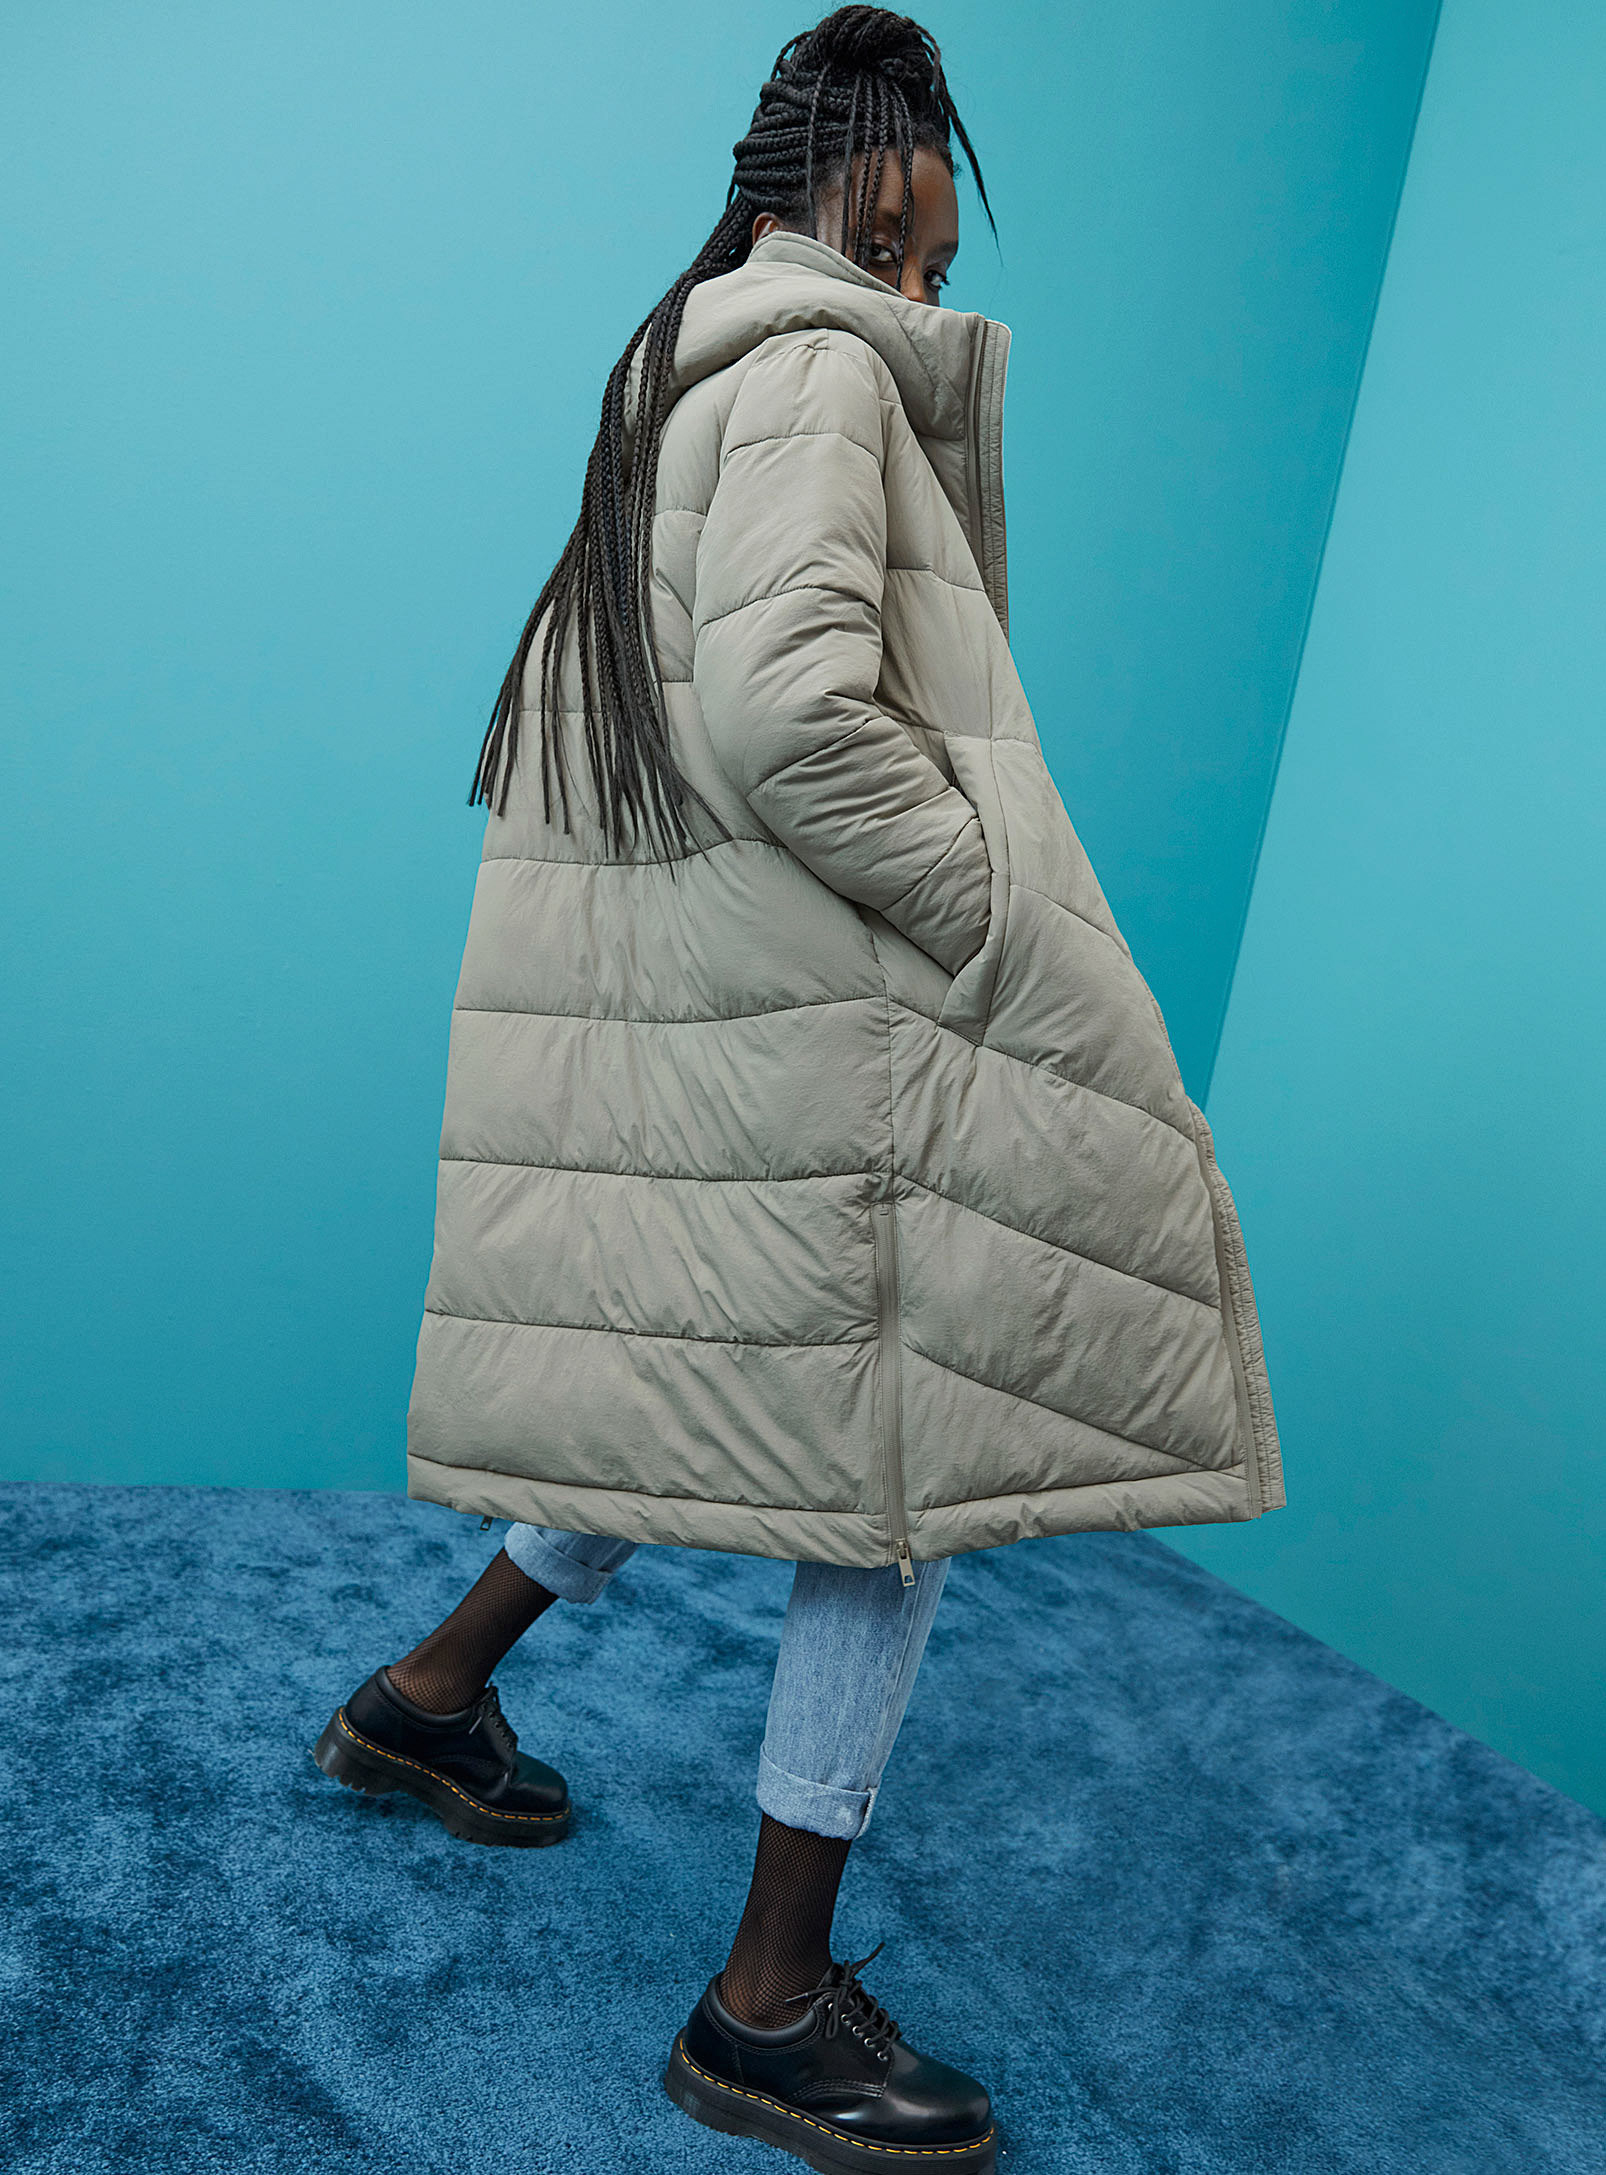 a person wearing a long puffer coat